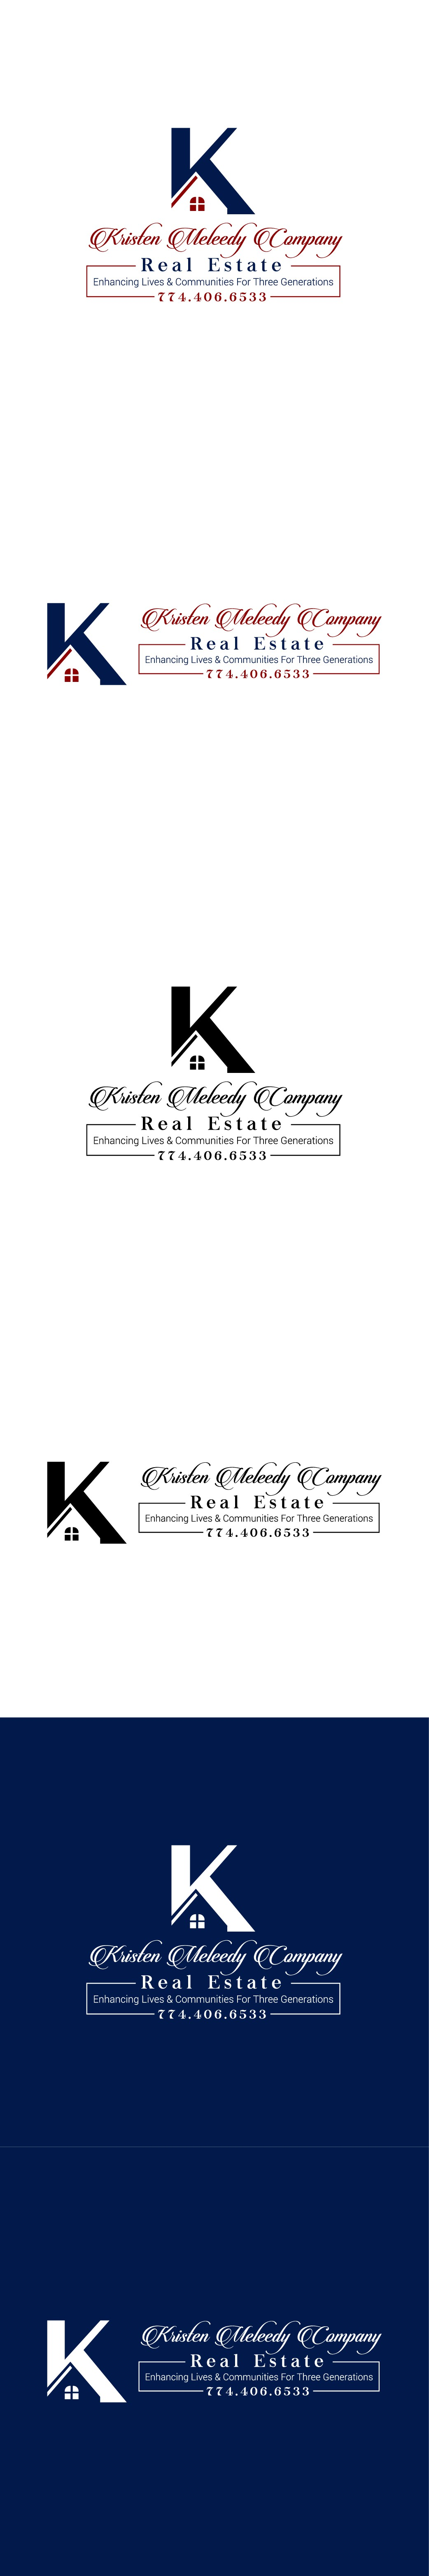 Realtor looking for classy fun logo to Stand out suggestions are uploaded to view